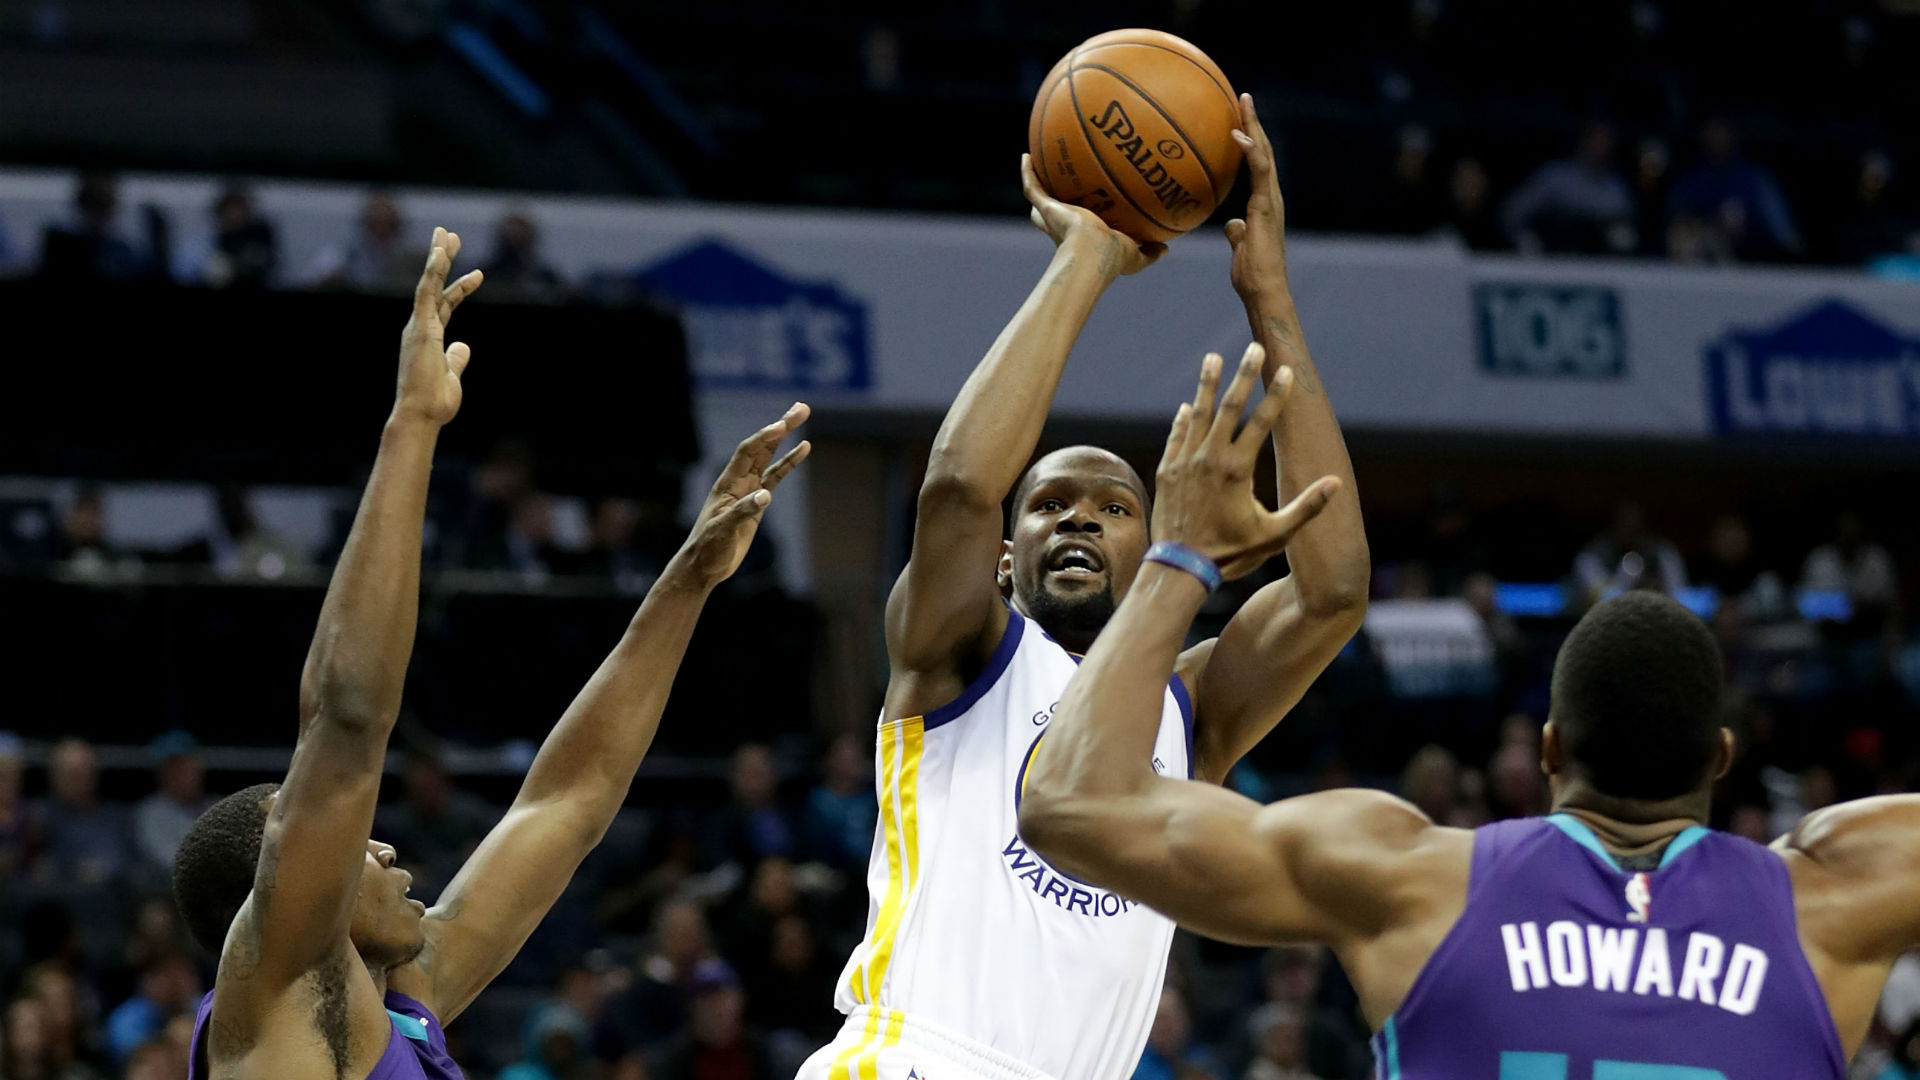 Warriors forward Kevin Durant shoots over Hornets center Dwight Howard